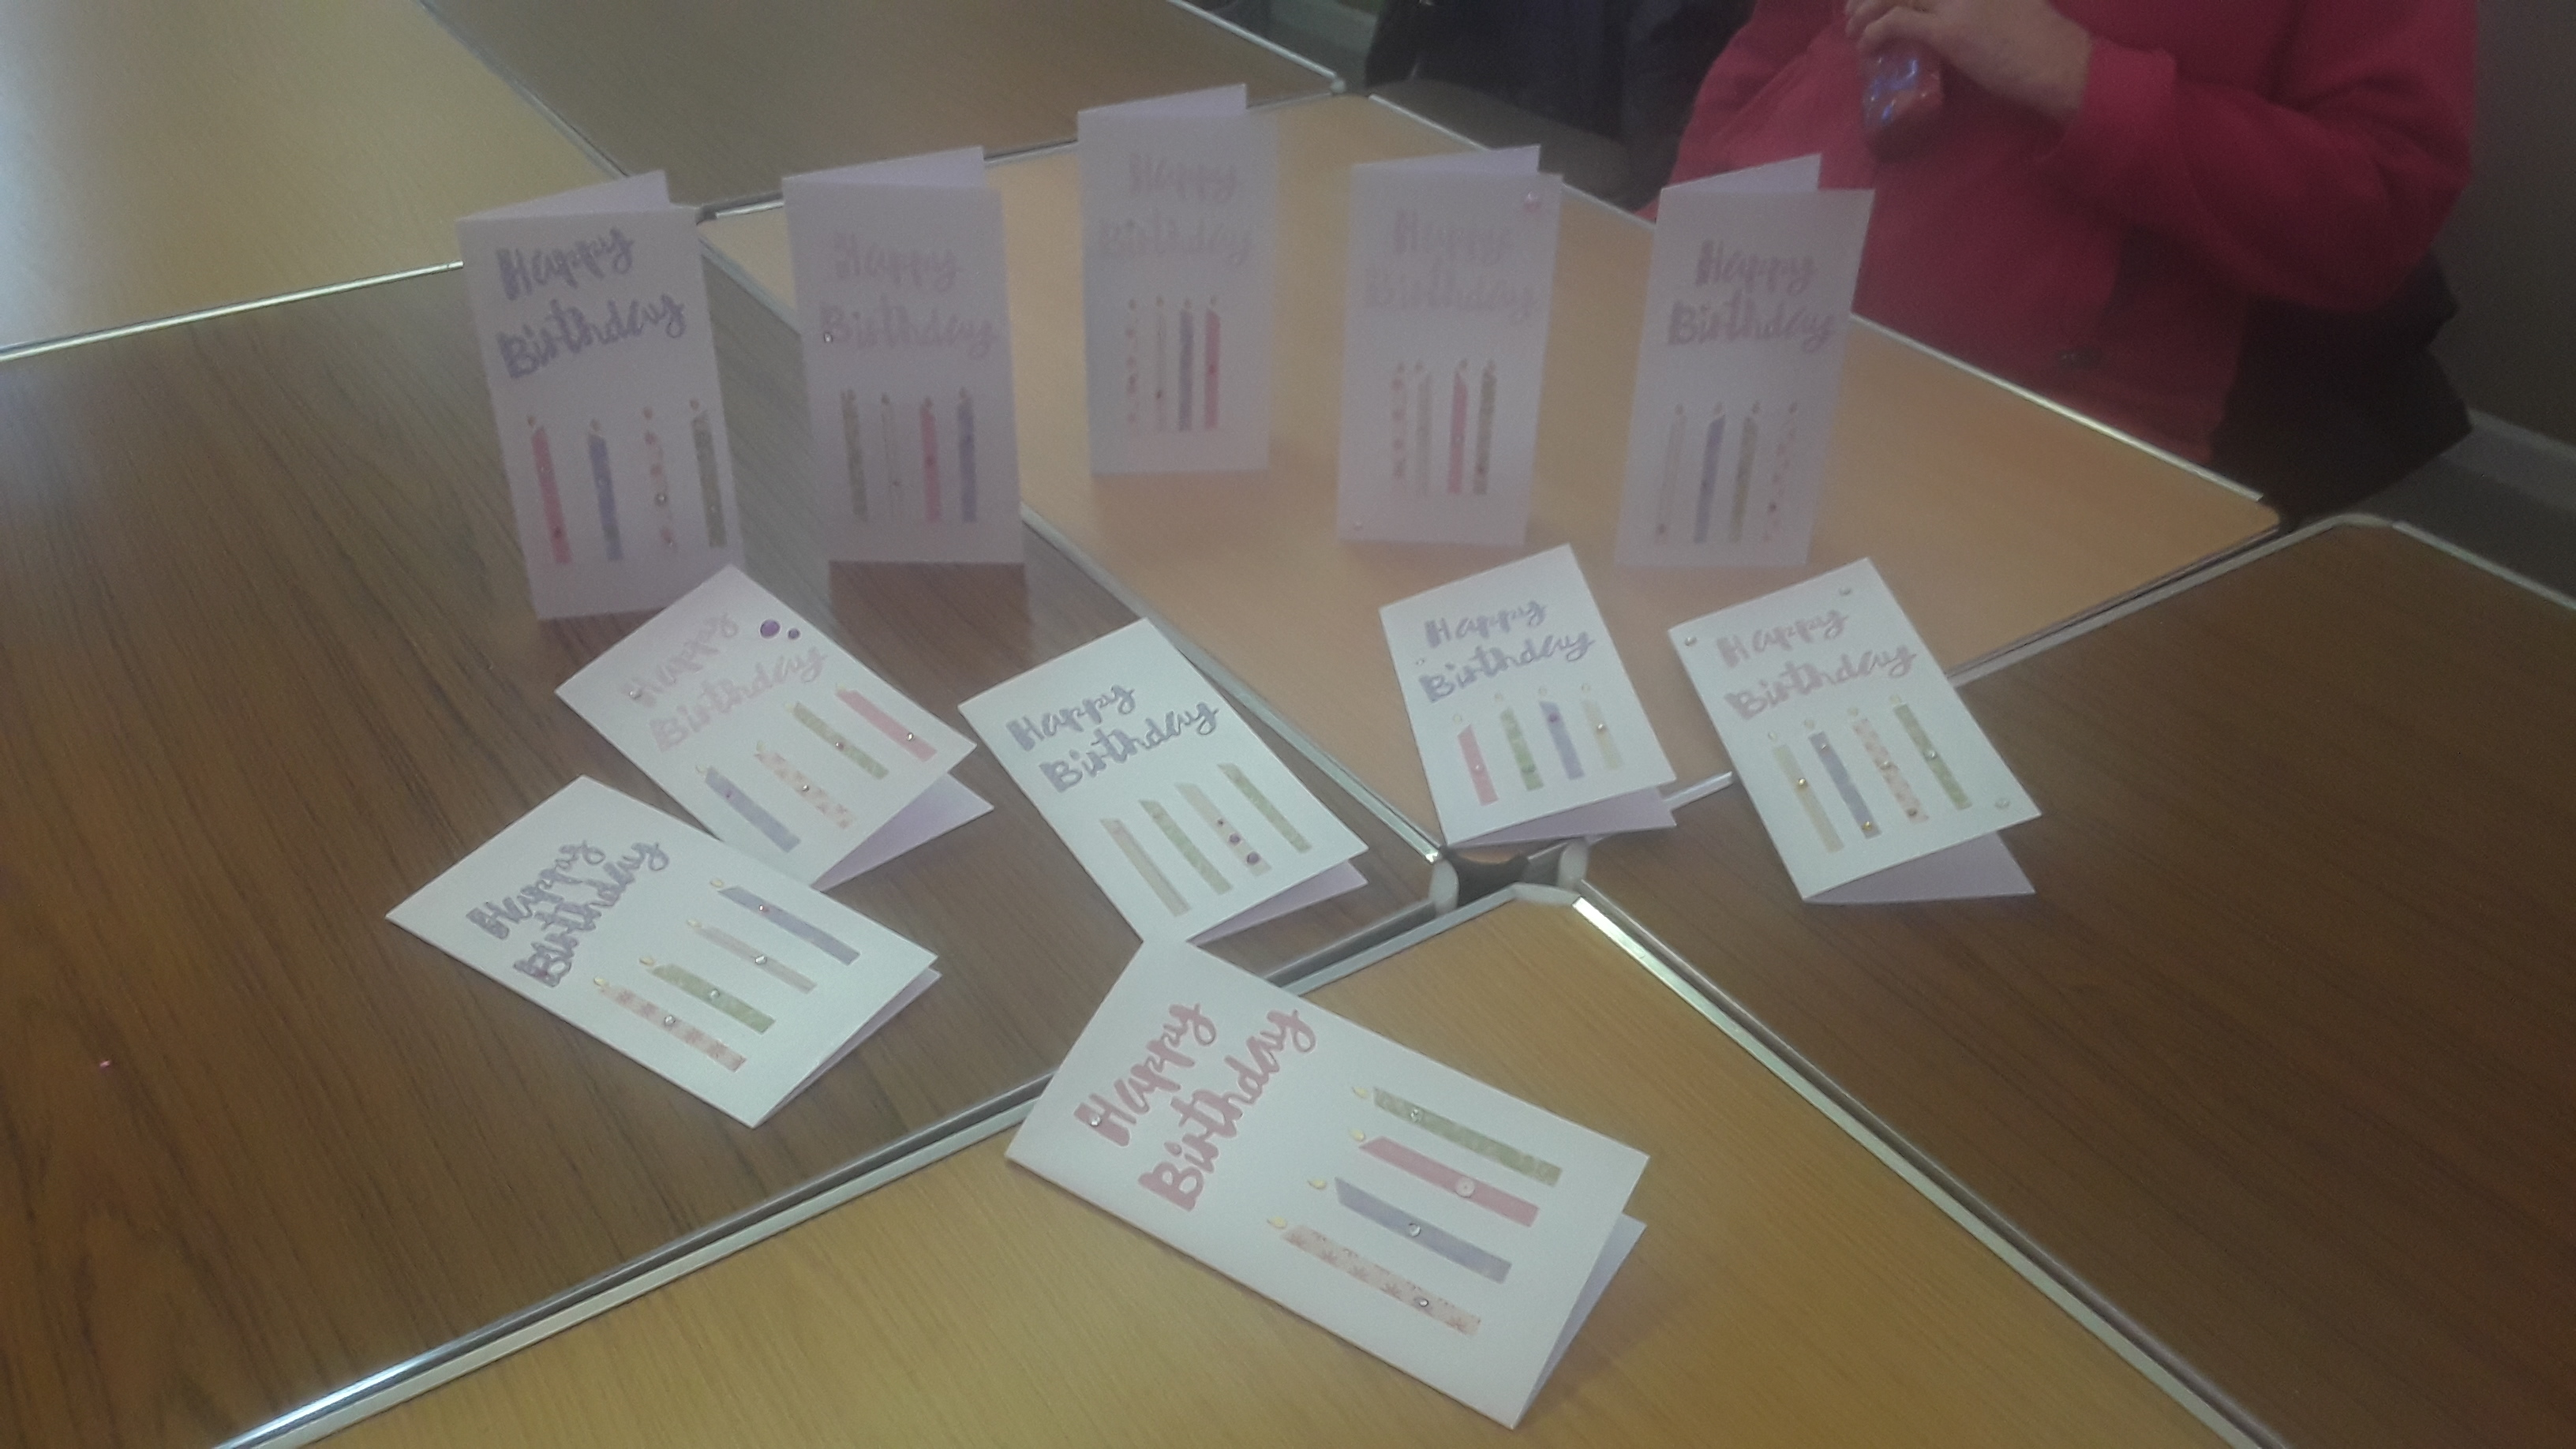 Cards produced at the first meeting 3/20